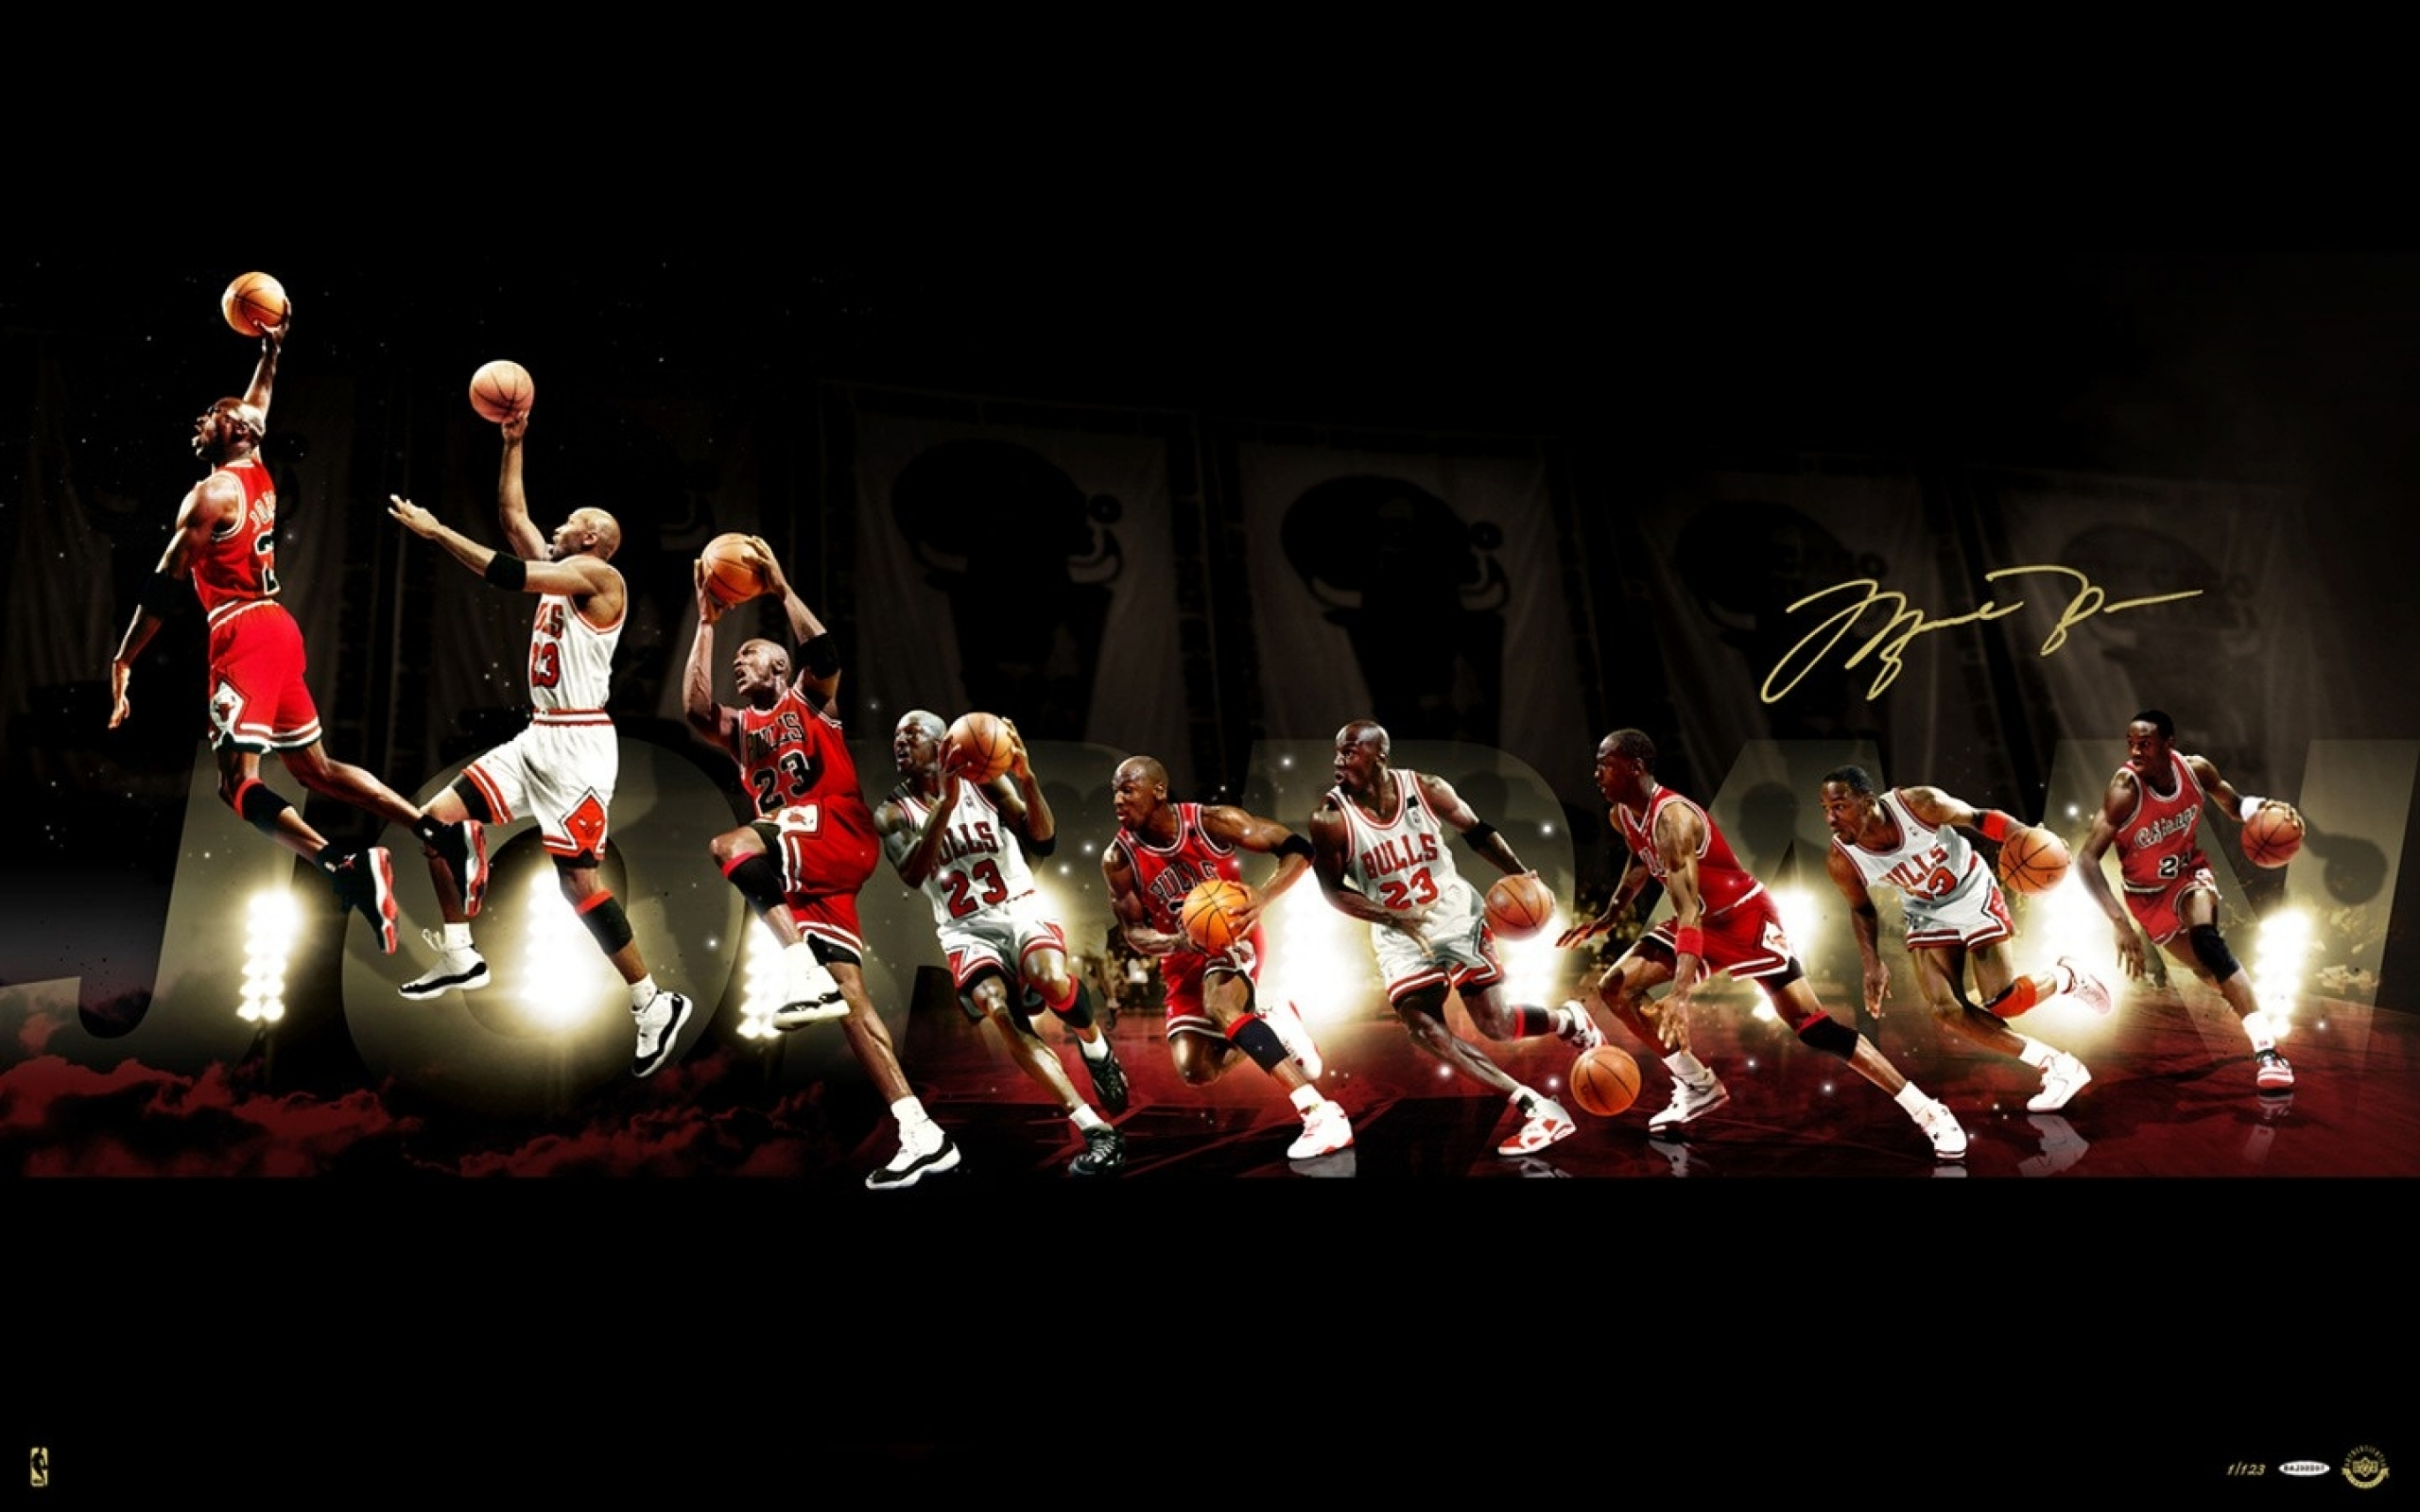 Michael Jordan Wallpapers, Pictures, Images